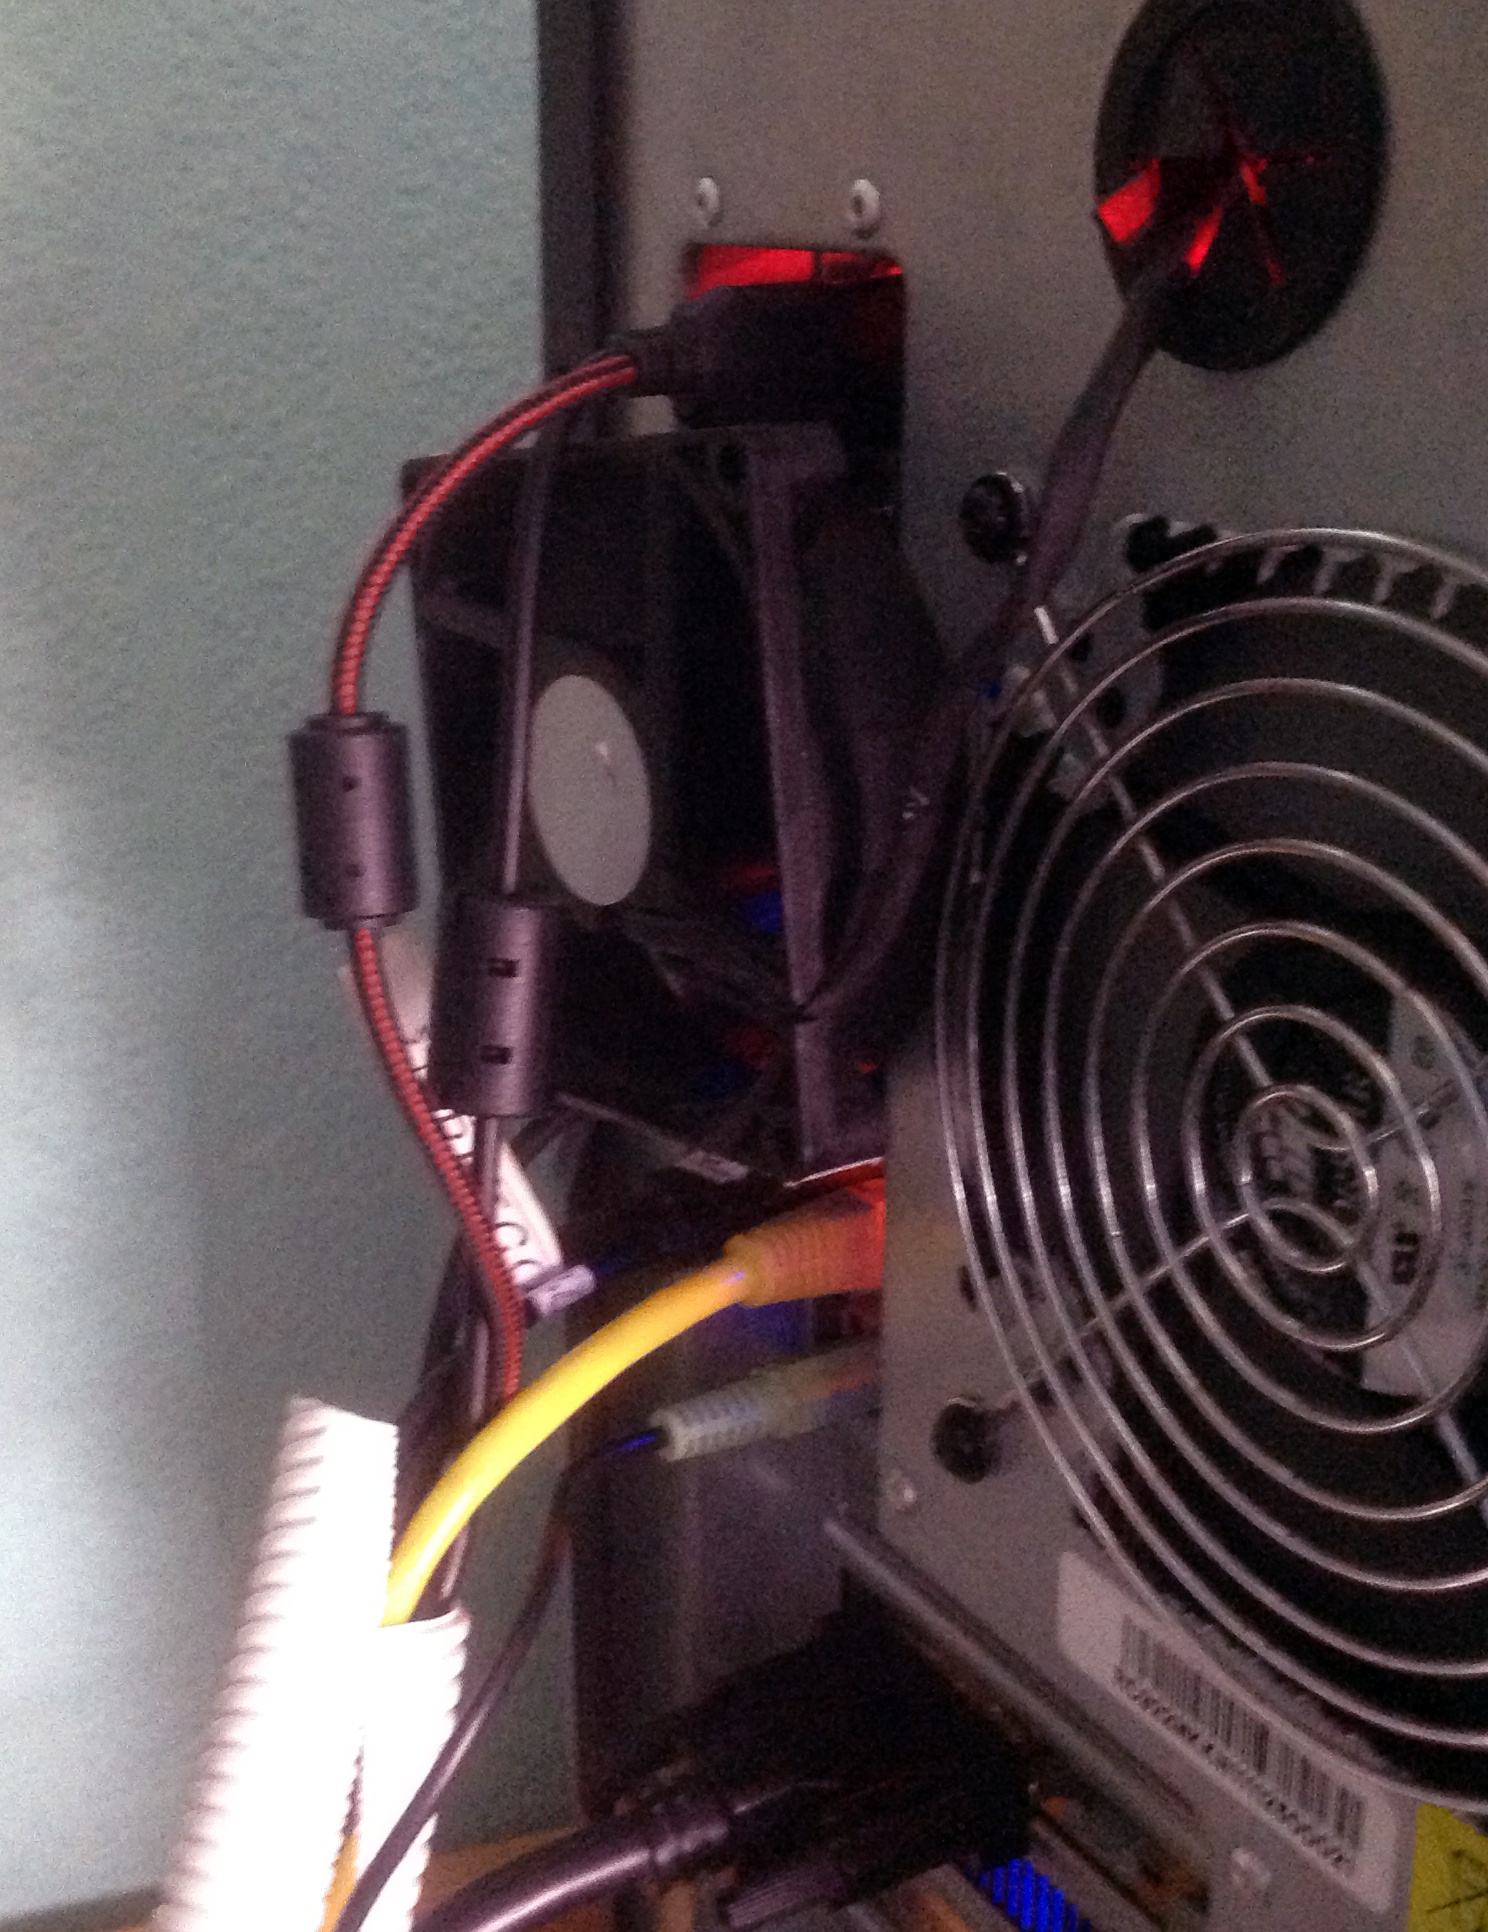 rear fan with cables in place